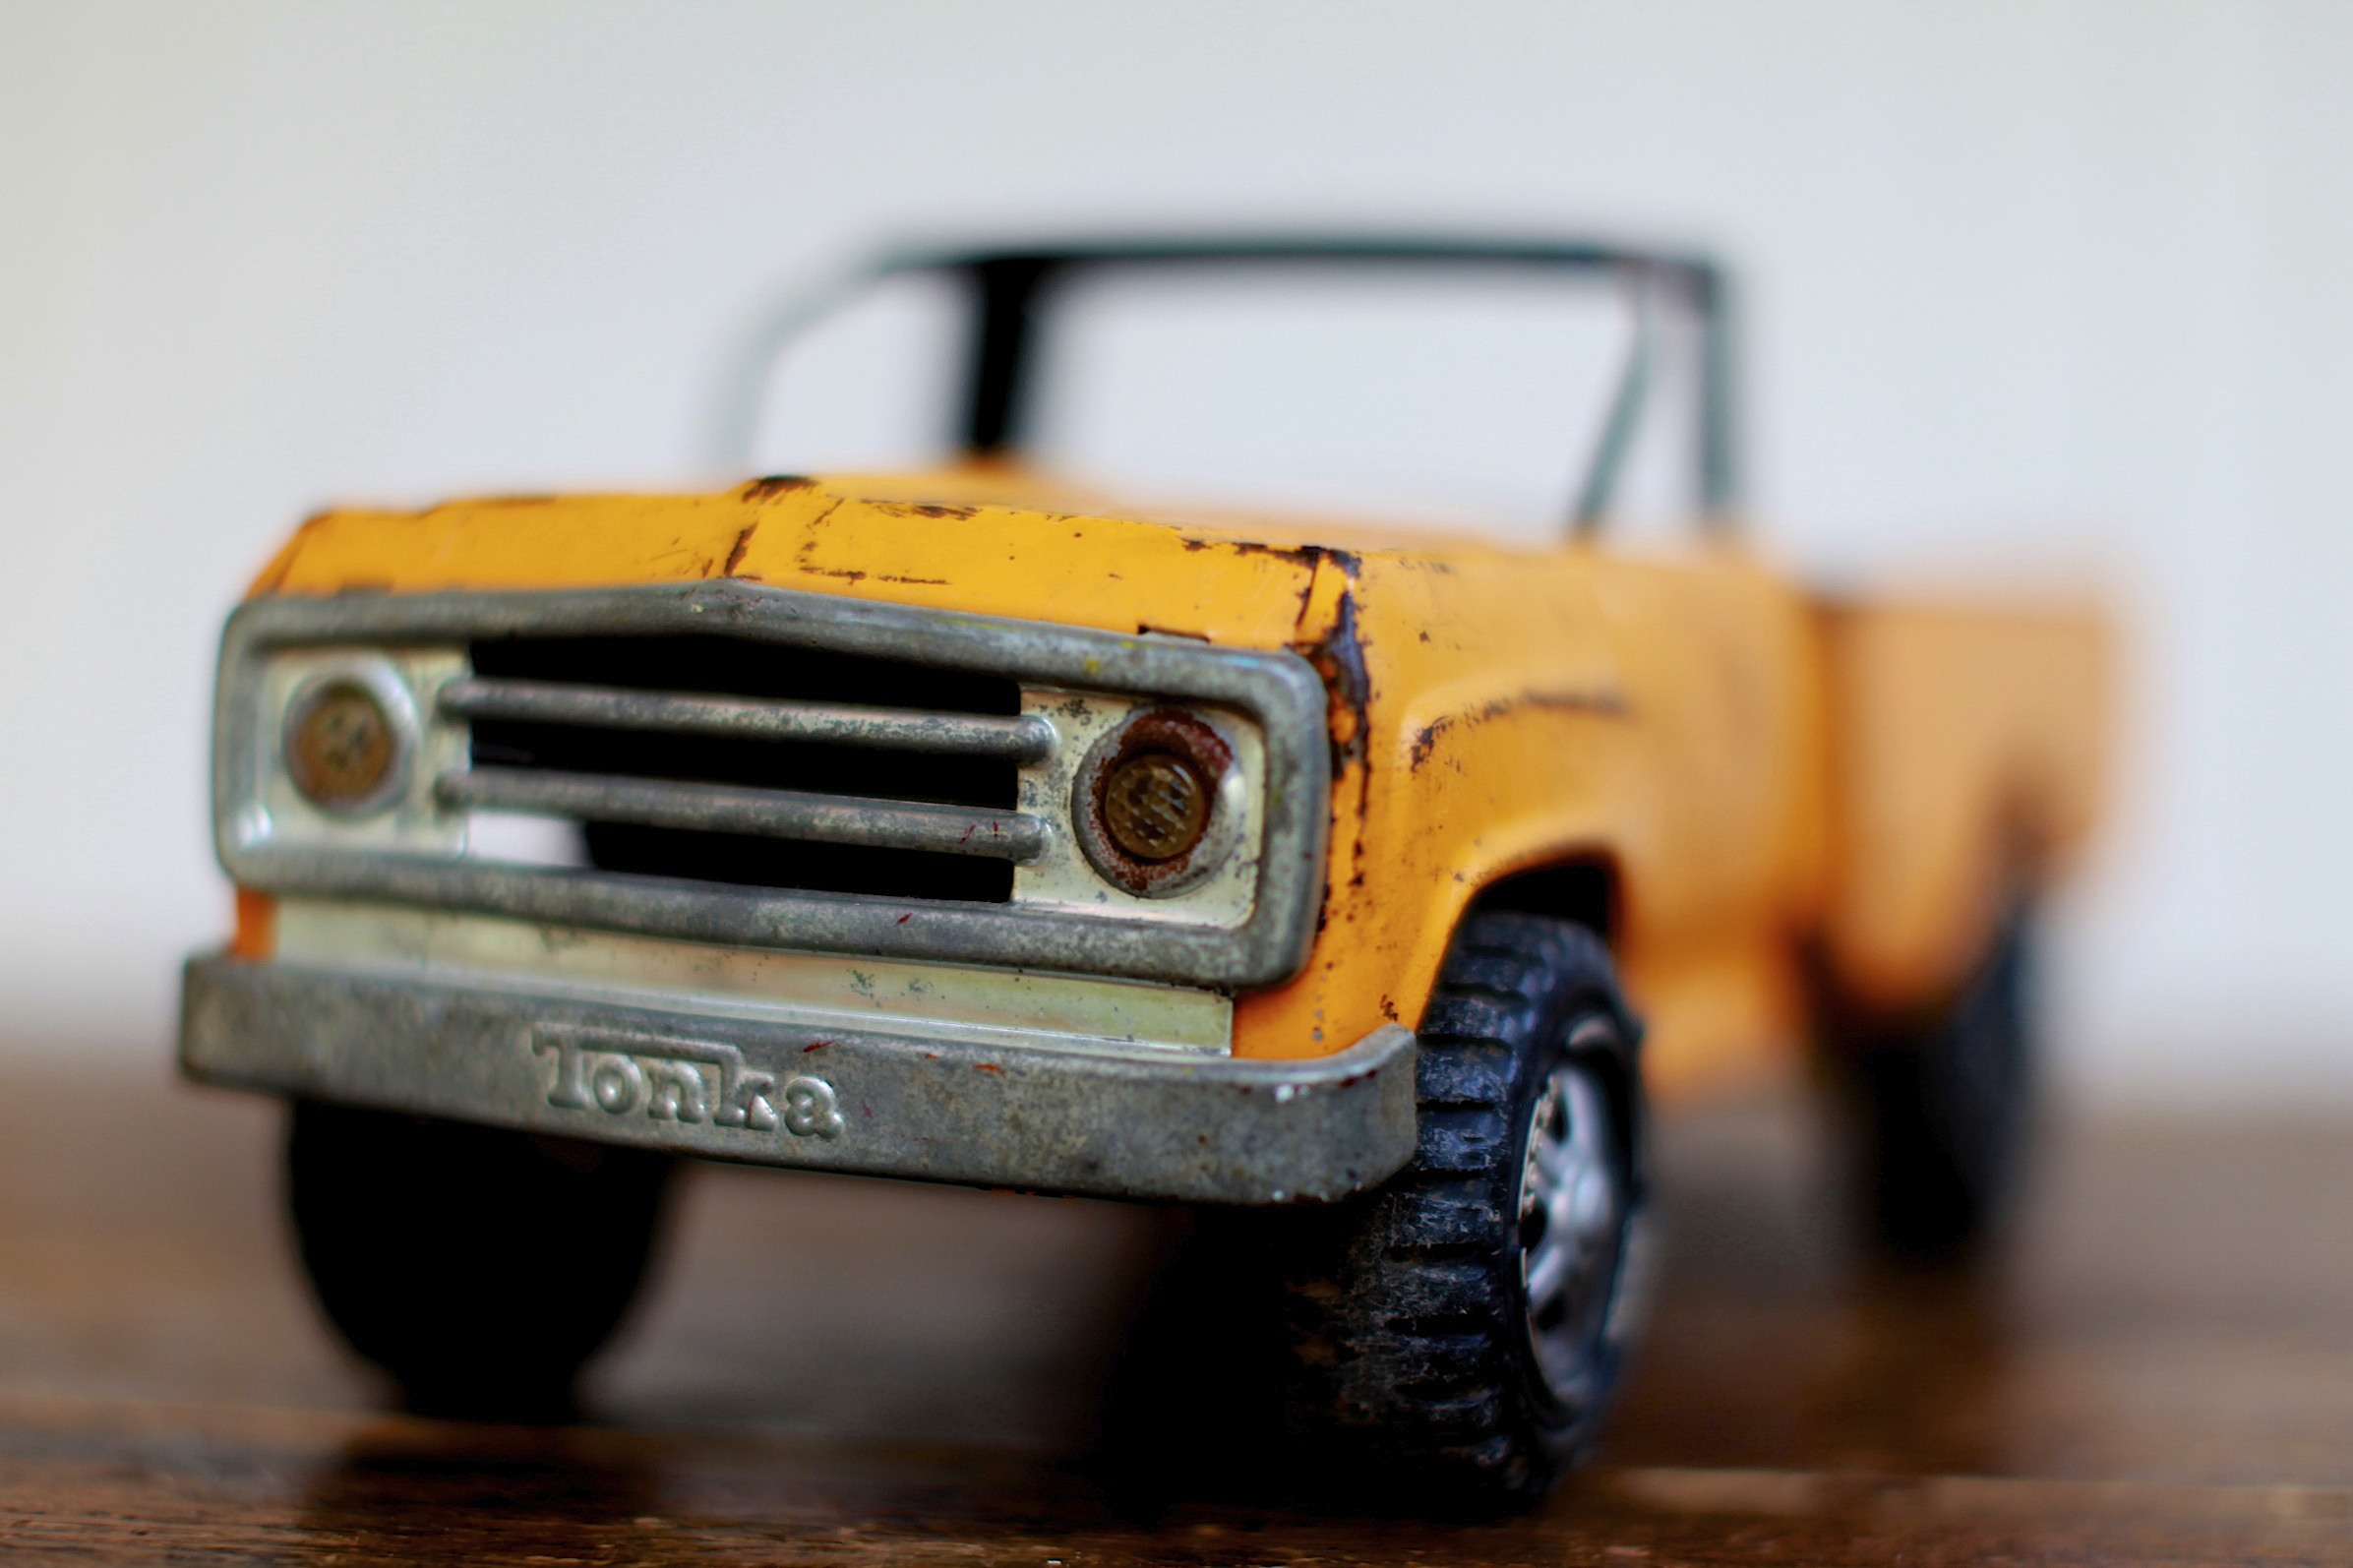 YELLOW TOY TRUCK FRONT VIEW 2012.jpg